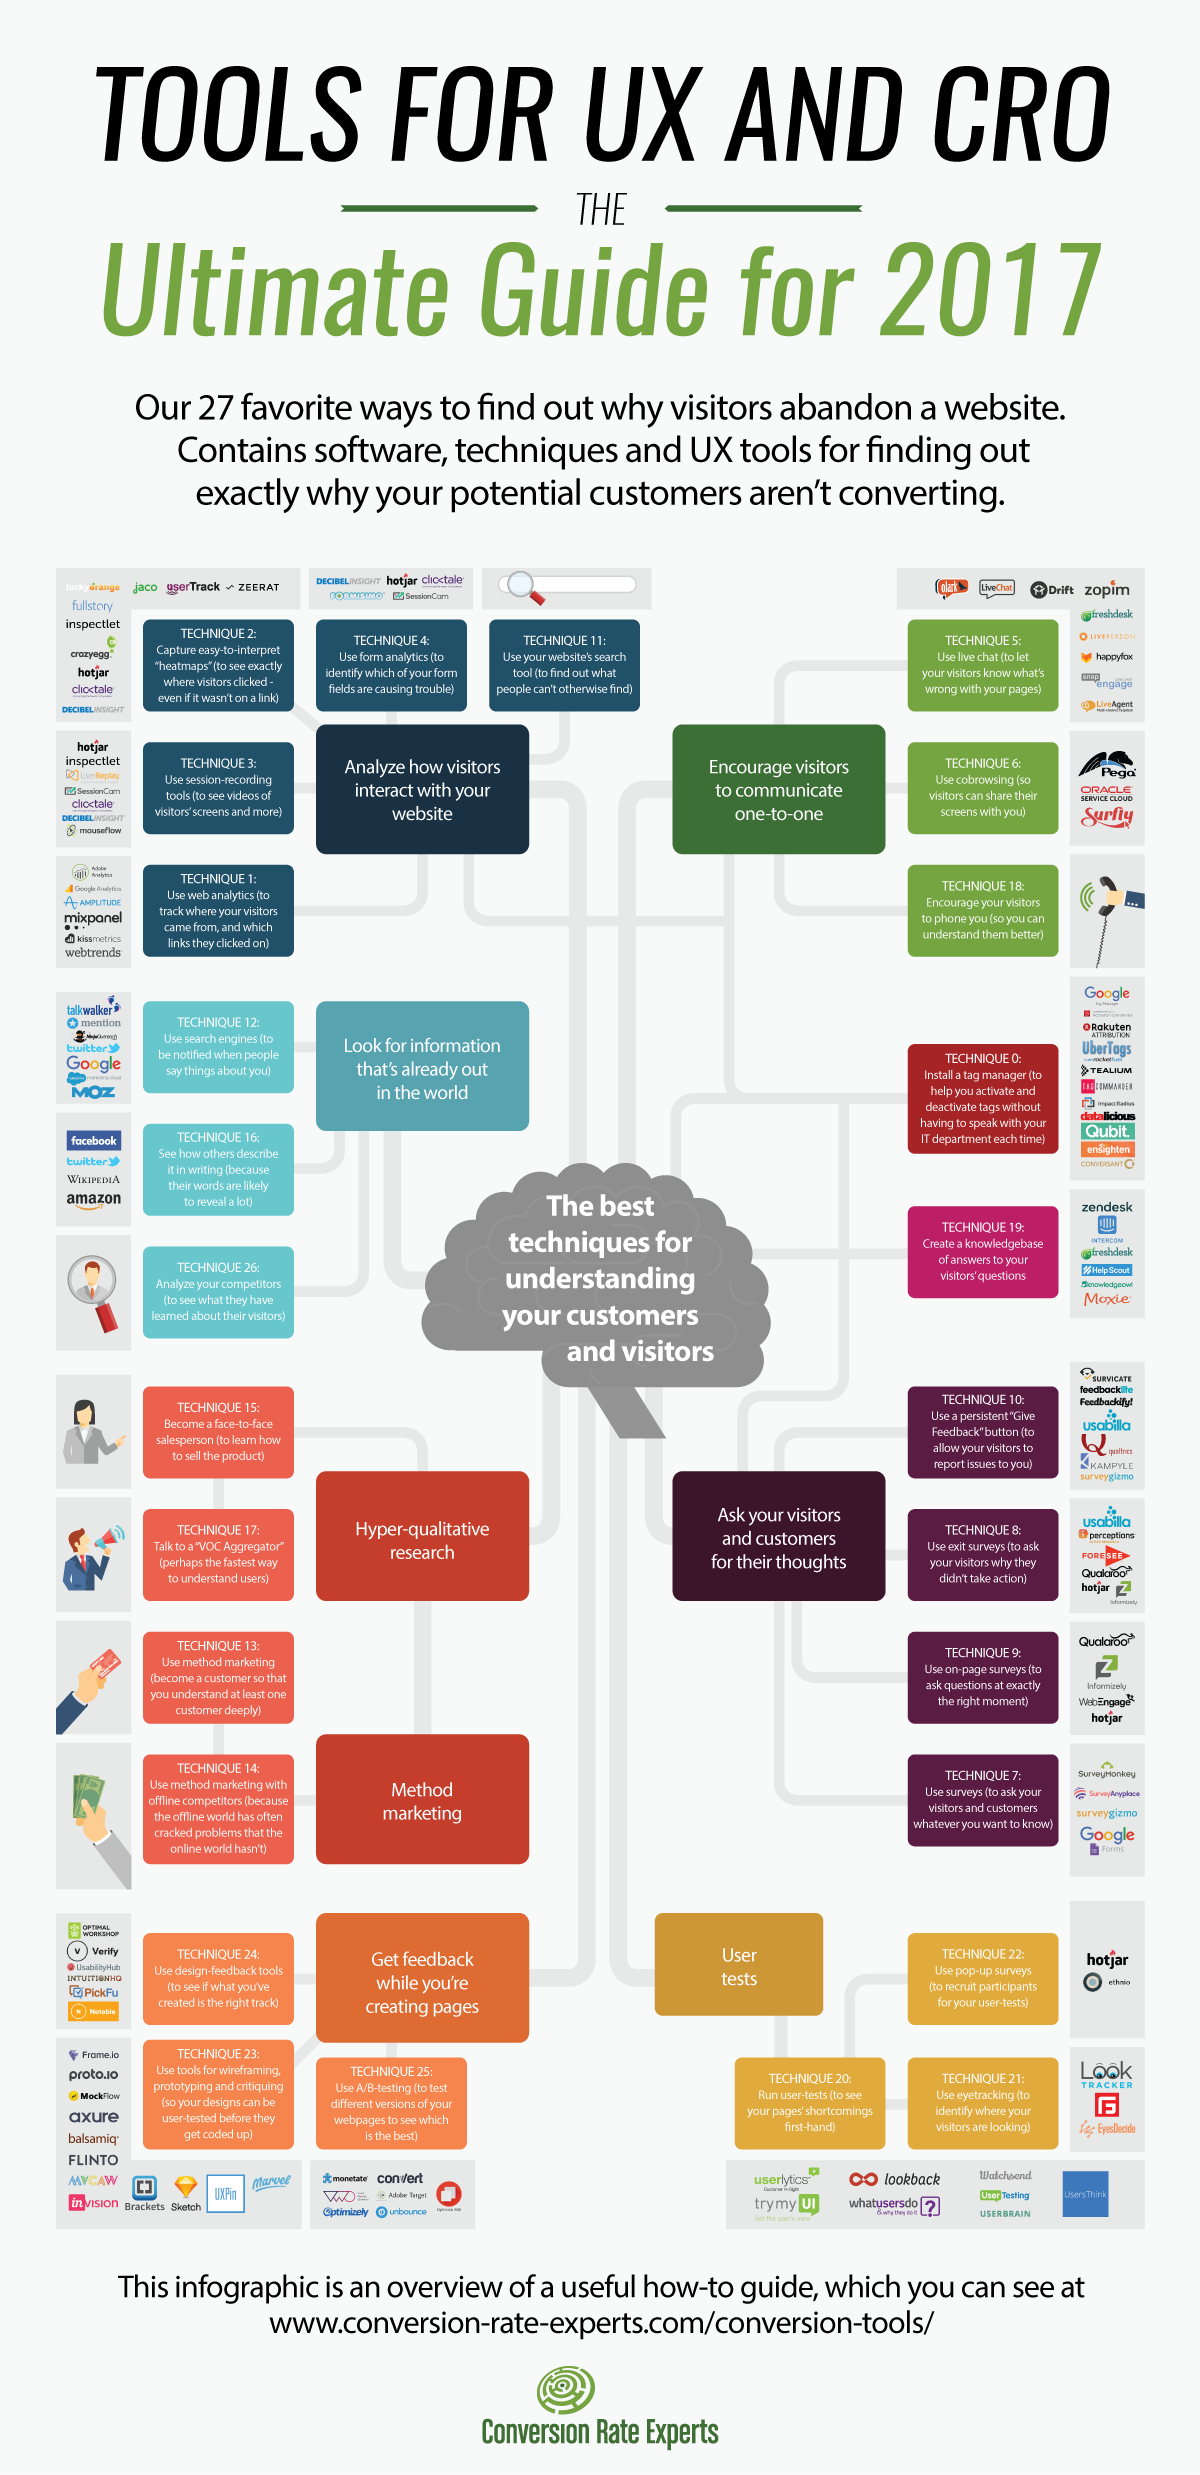 An infographic of tools for conversion and UX